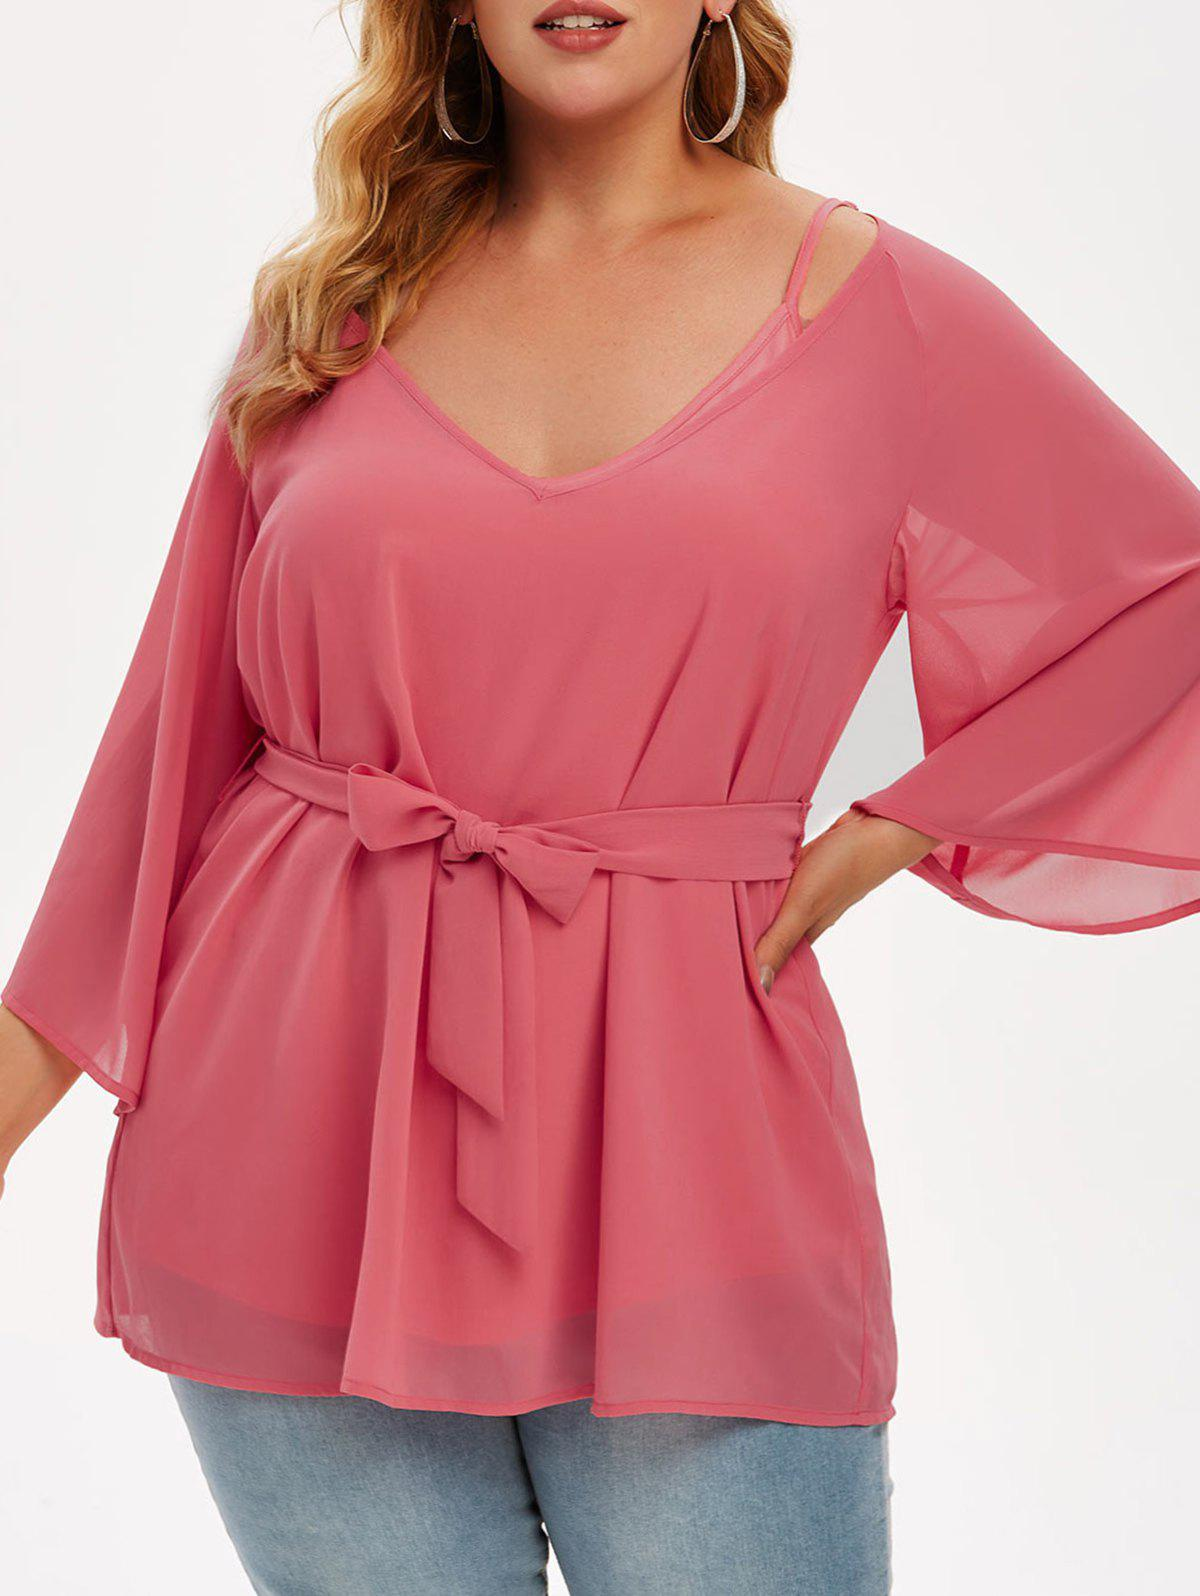 Plus Size Solid Cami Top And Chiffon Belted Blouse Set - LIGHT PINK 5X